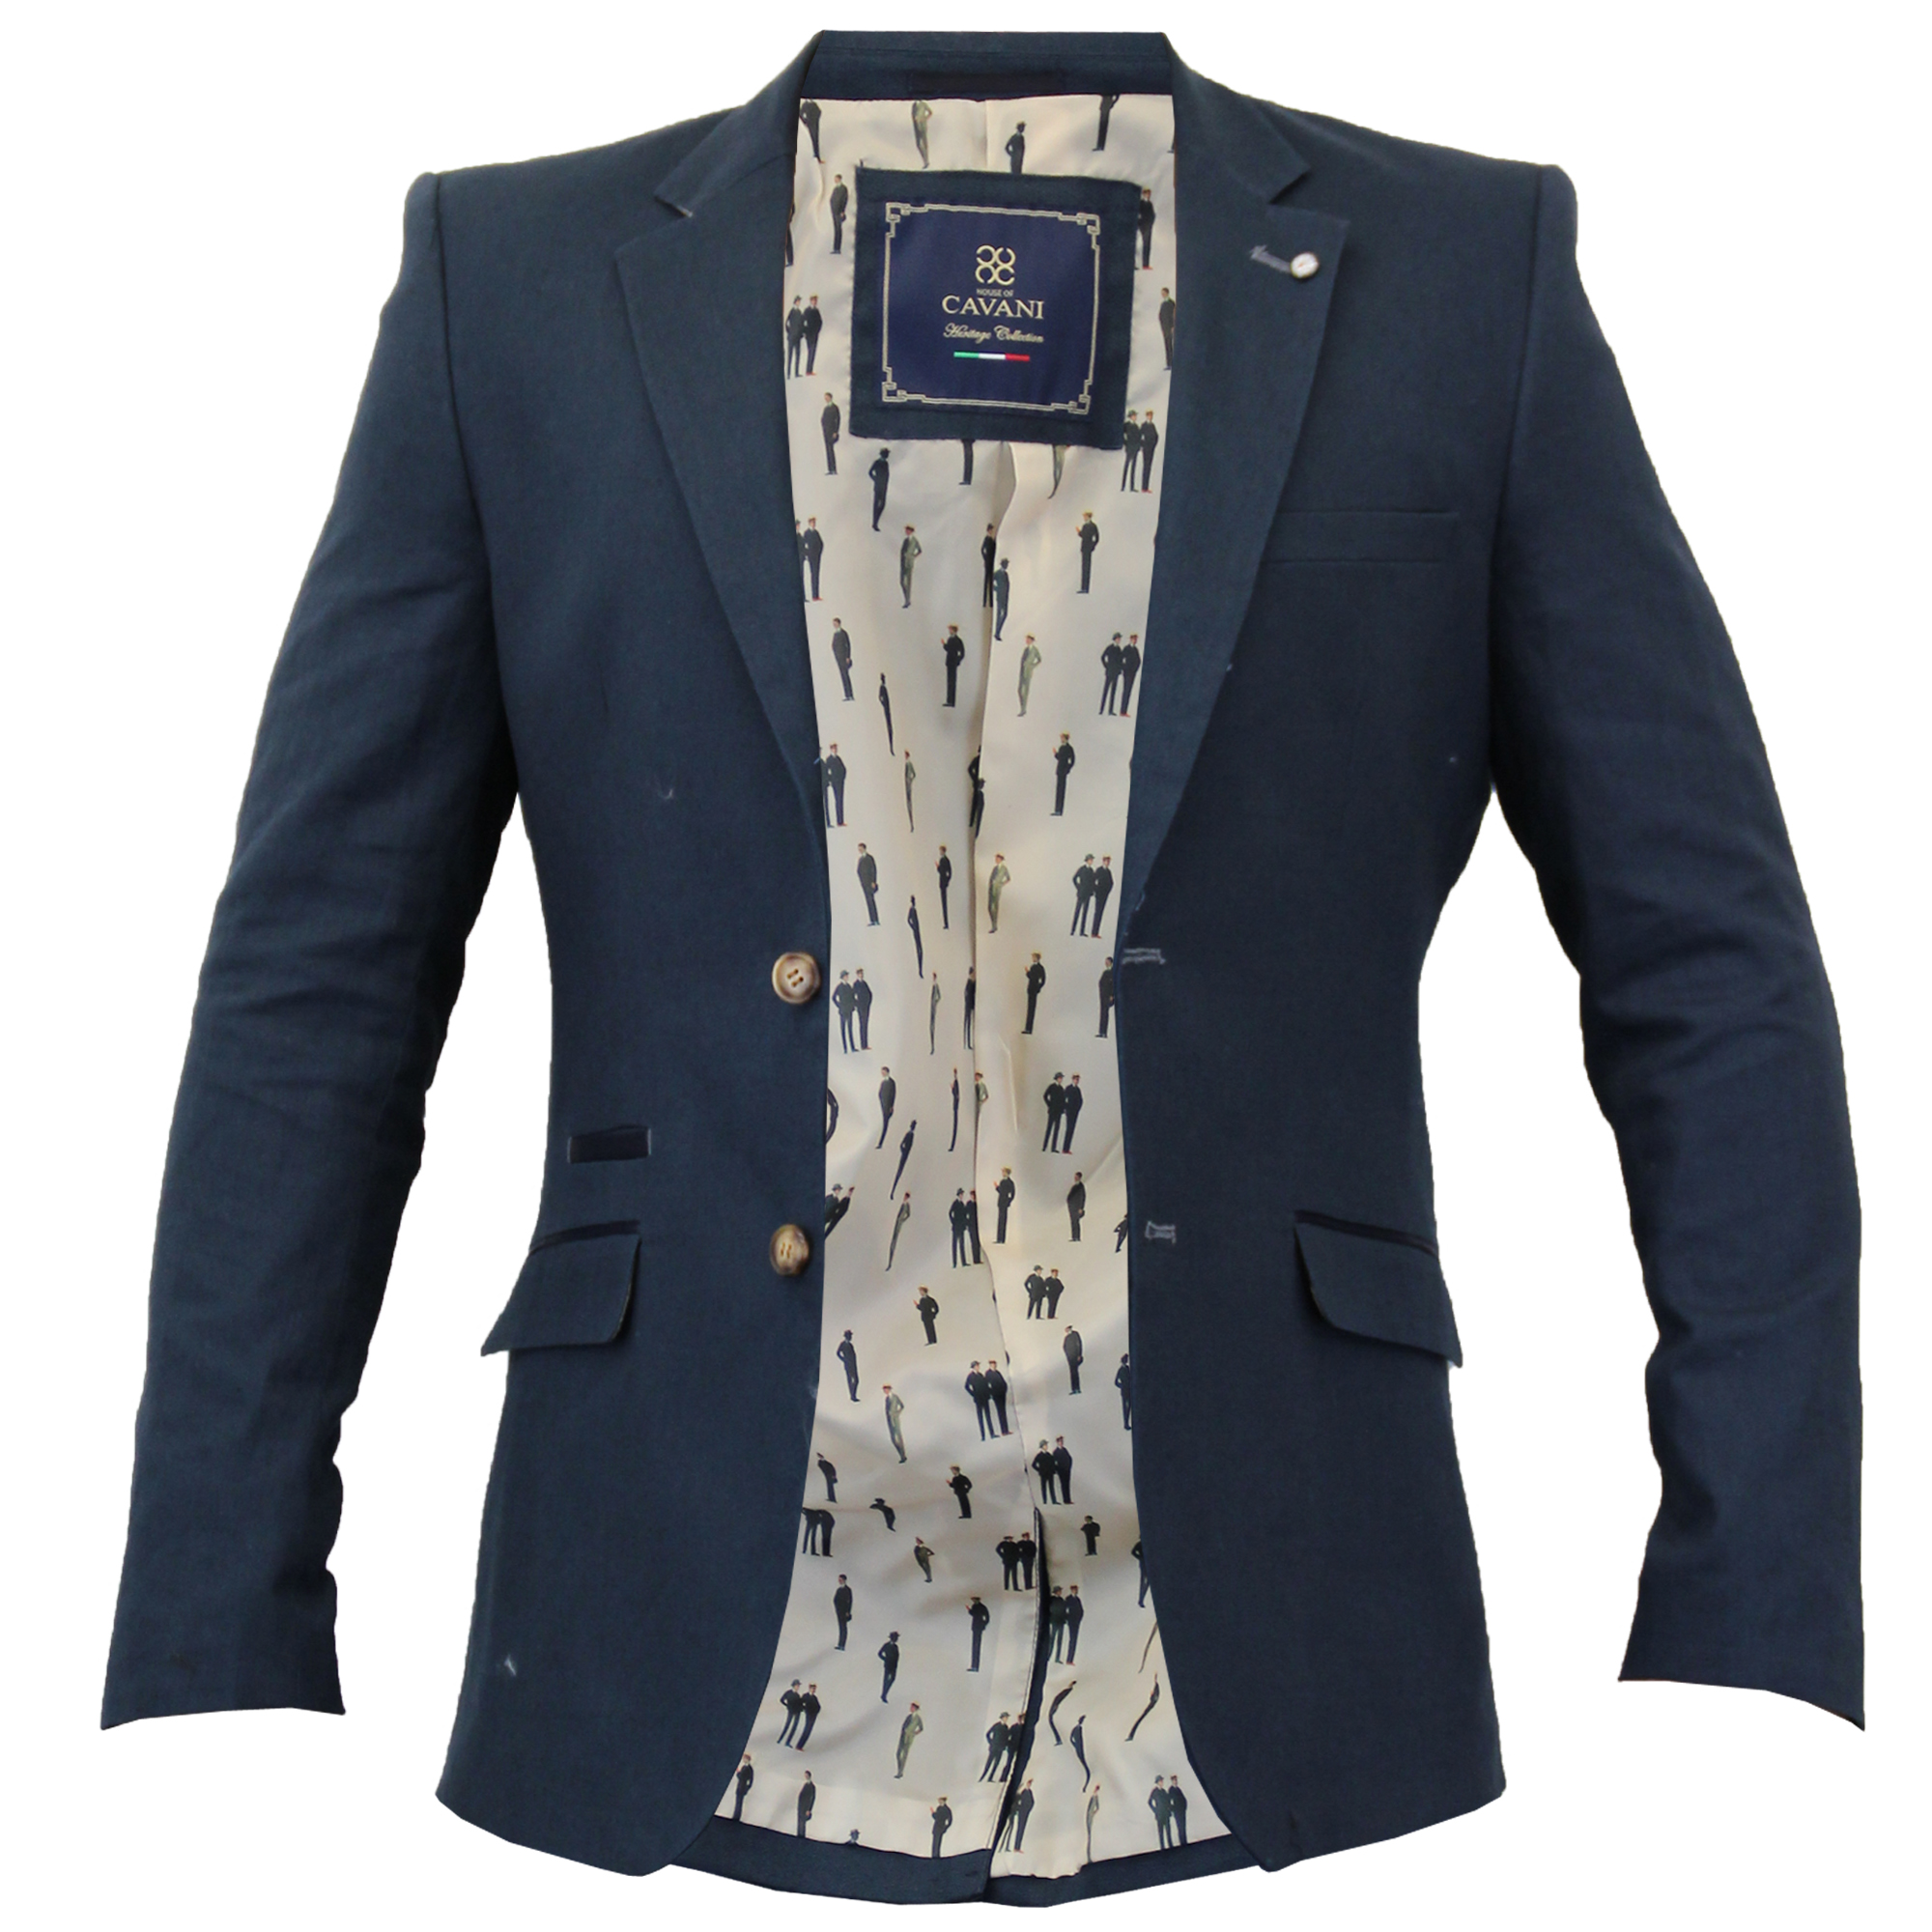 Mens Black and Grey Color Block Two Tone Single Blazer Jacket (BJ) $ FLATSEVEN is a designer fashion brand which specializes in clothing and distrib-wjmx2fn9.ga main products are jackets, coats, blazers, shirts, t-shirts.